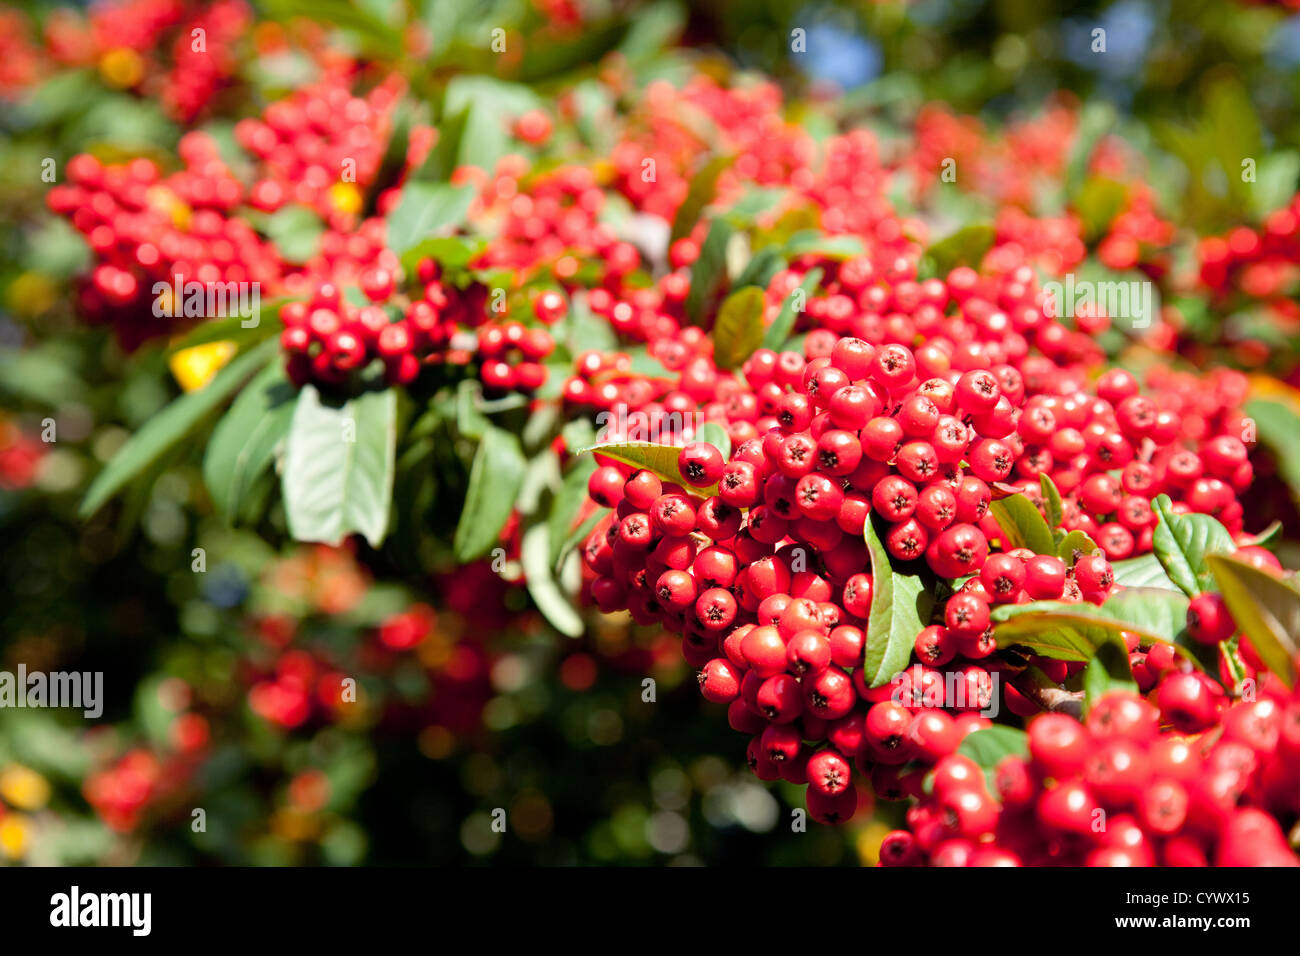 Red berries of the Rowan tree, or Mountain Ash, in autumn fall, UK, Europe - Stock Image